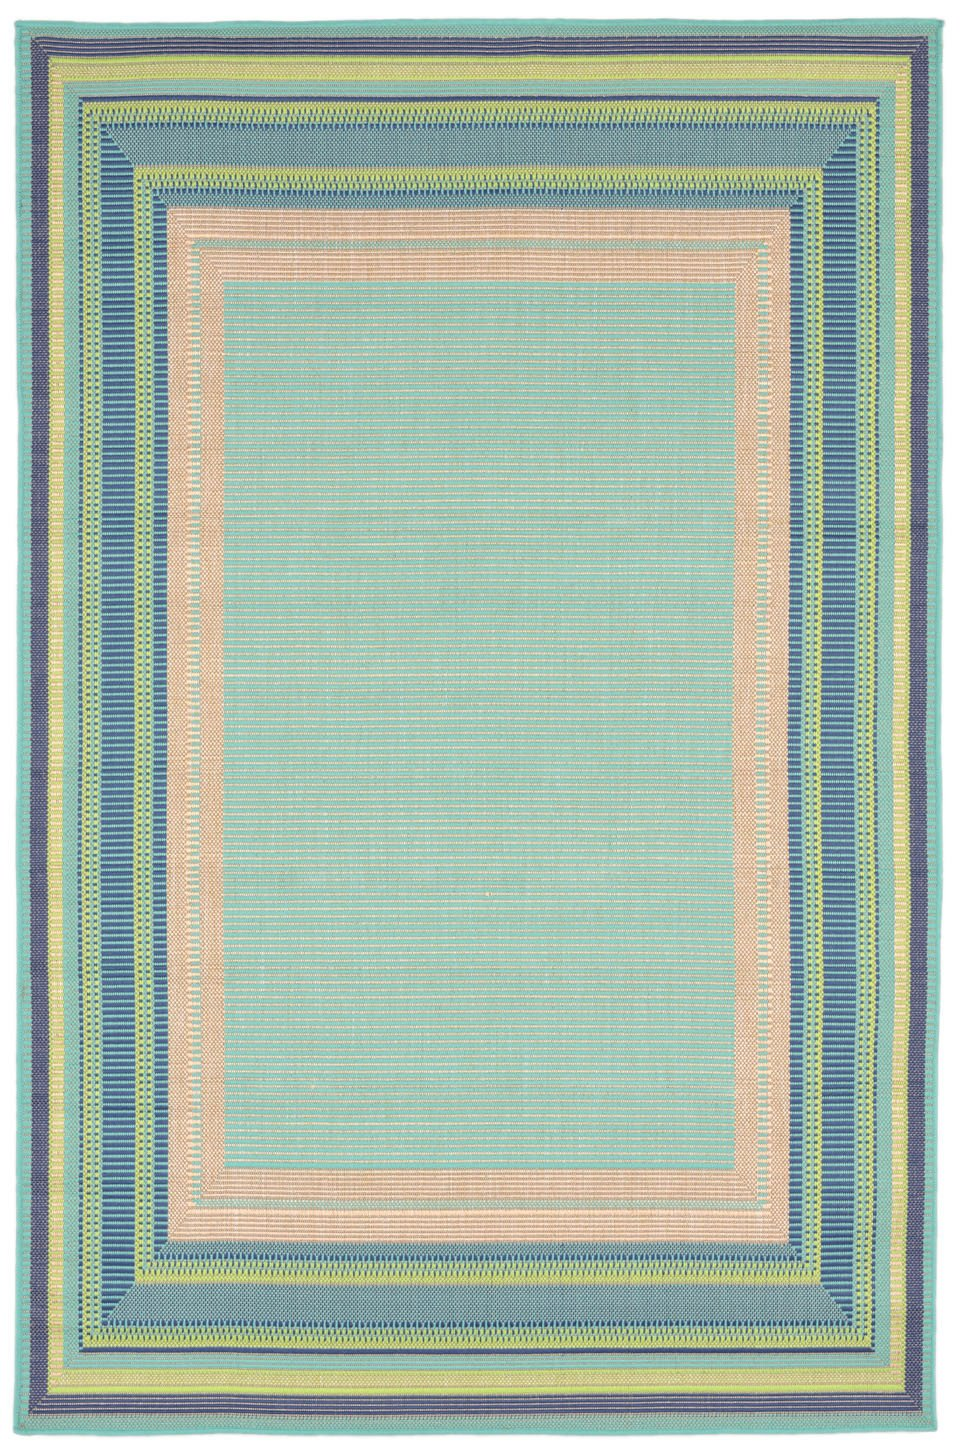 Trans-Ocean Imports PLY45136033 Playa Collection Blue Finish Everywear Rug from Trans-Ocean